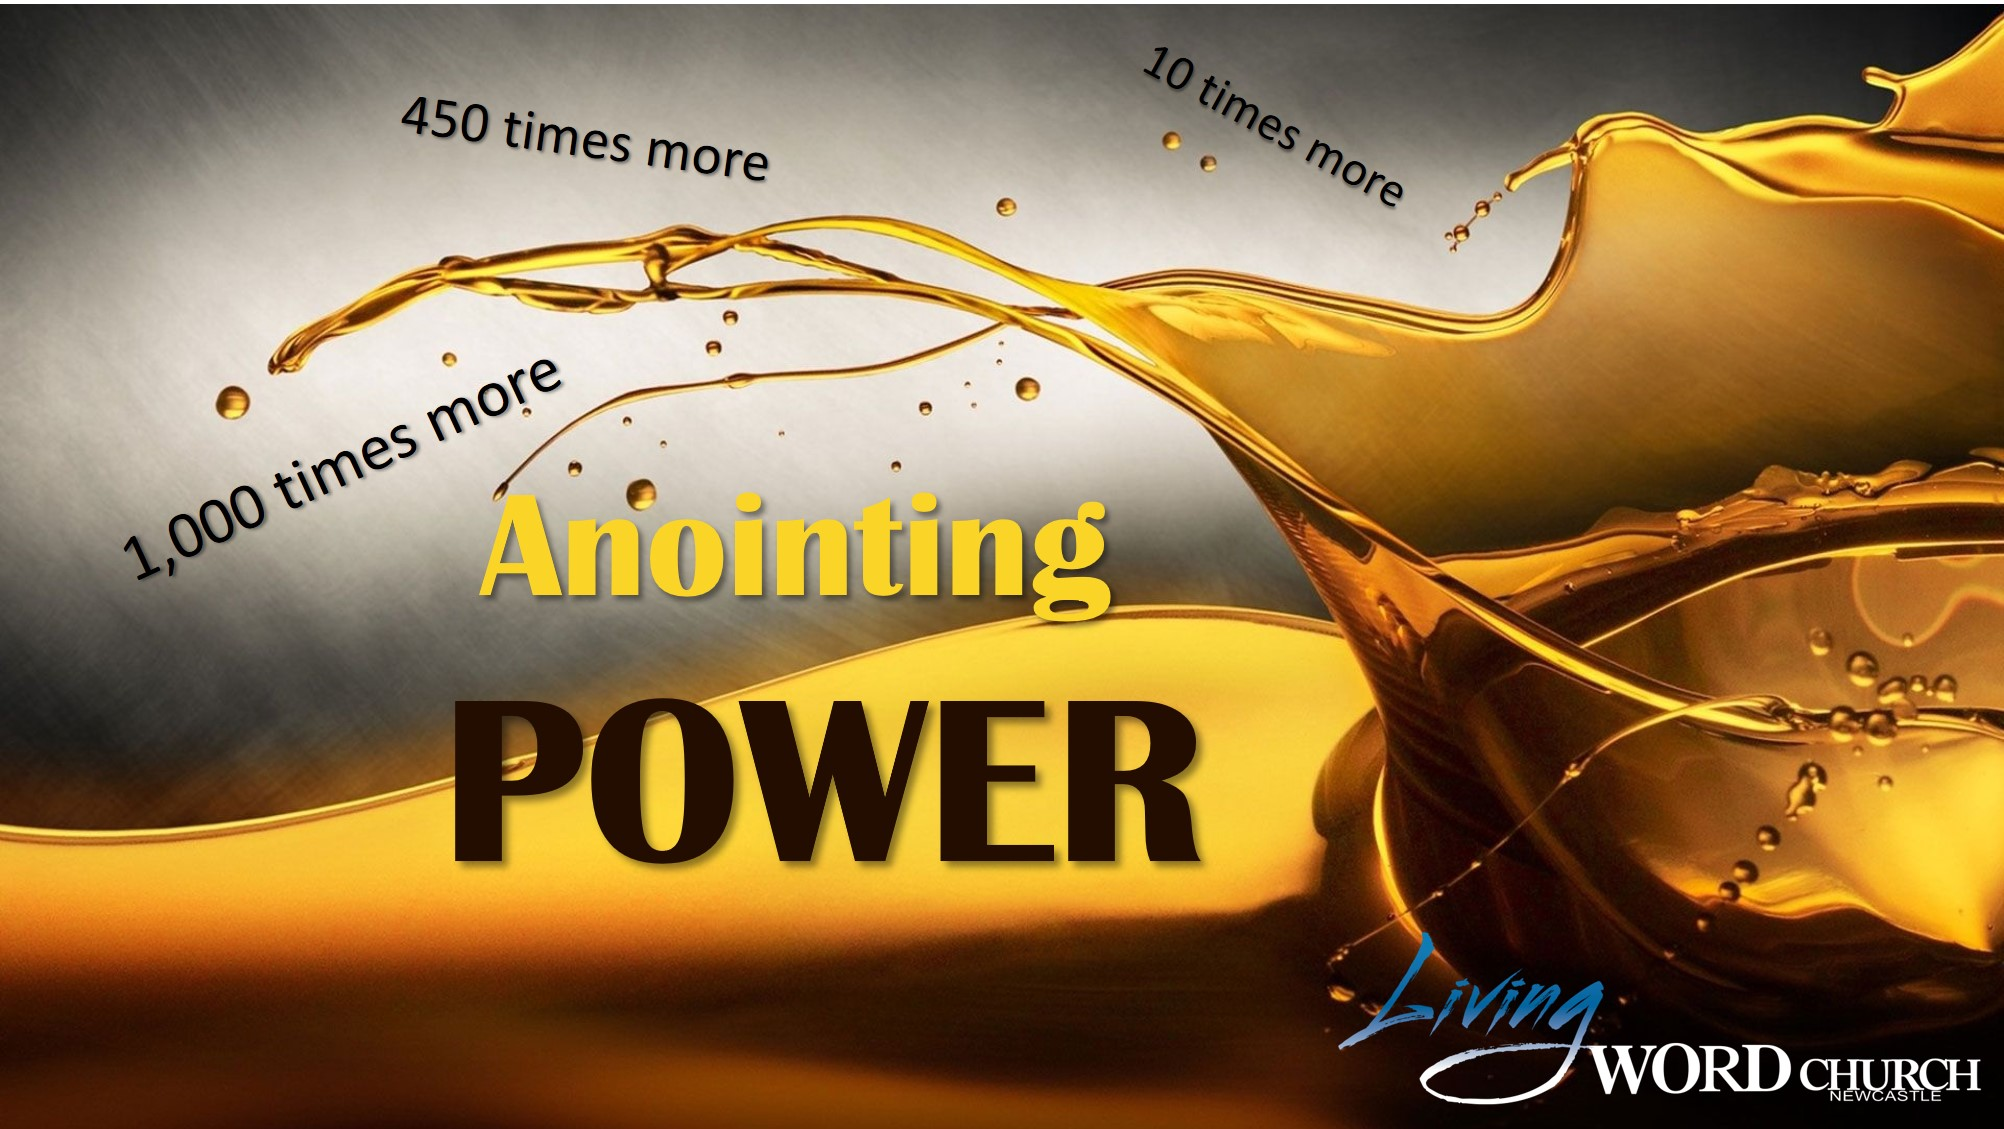 Anointing Power